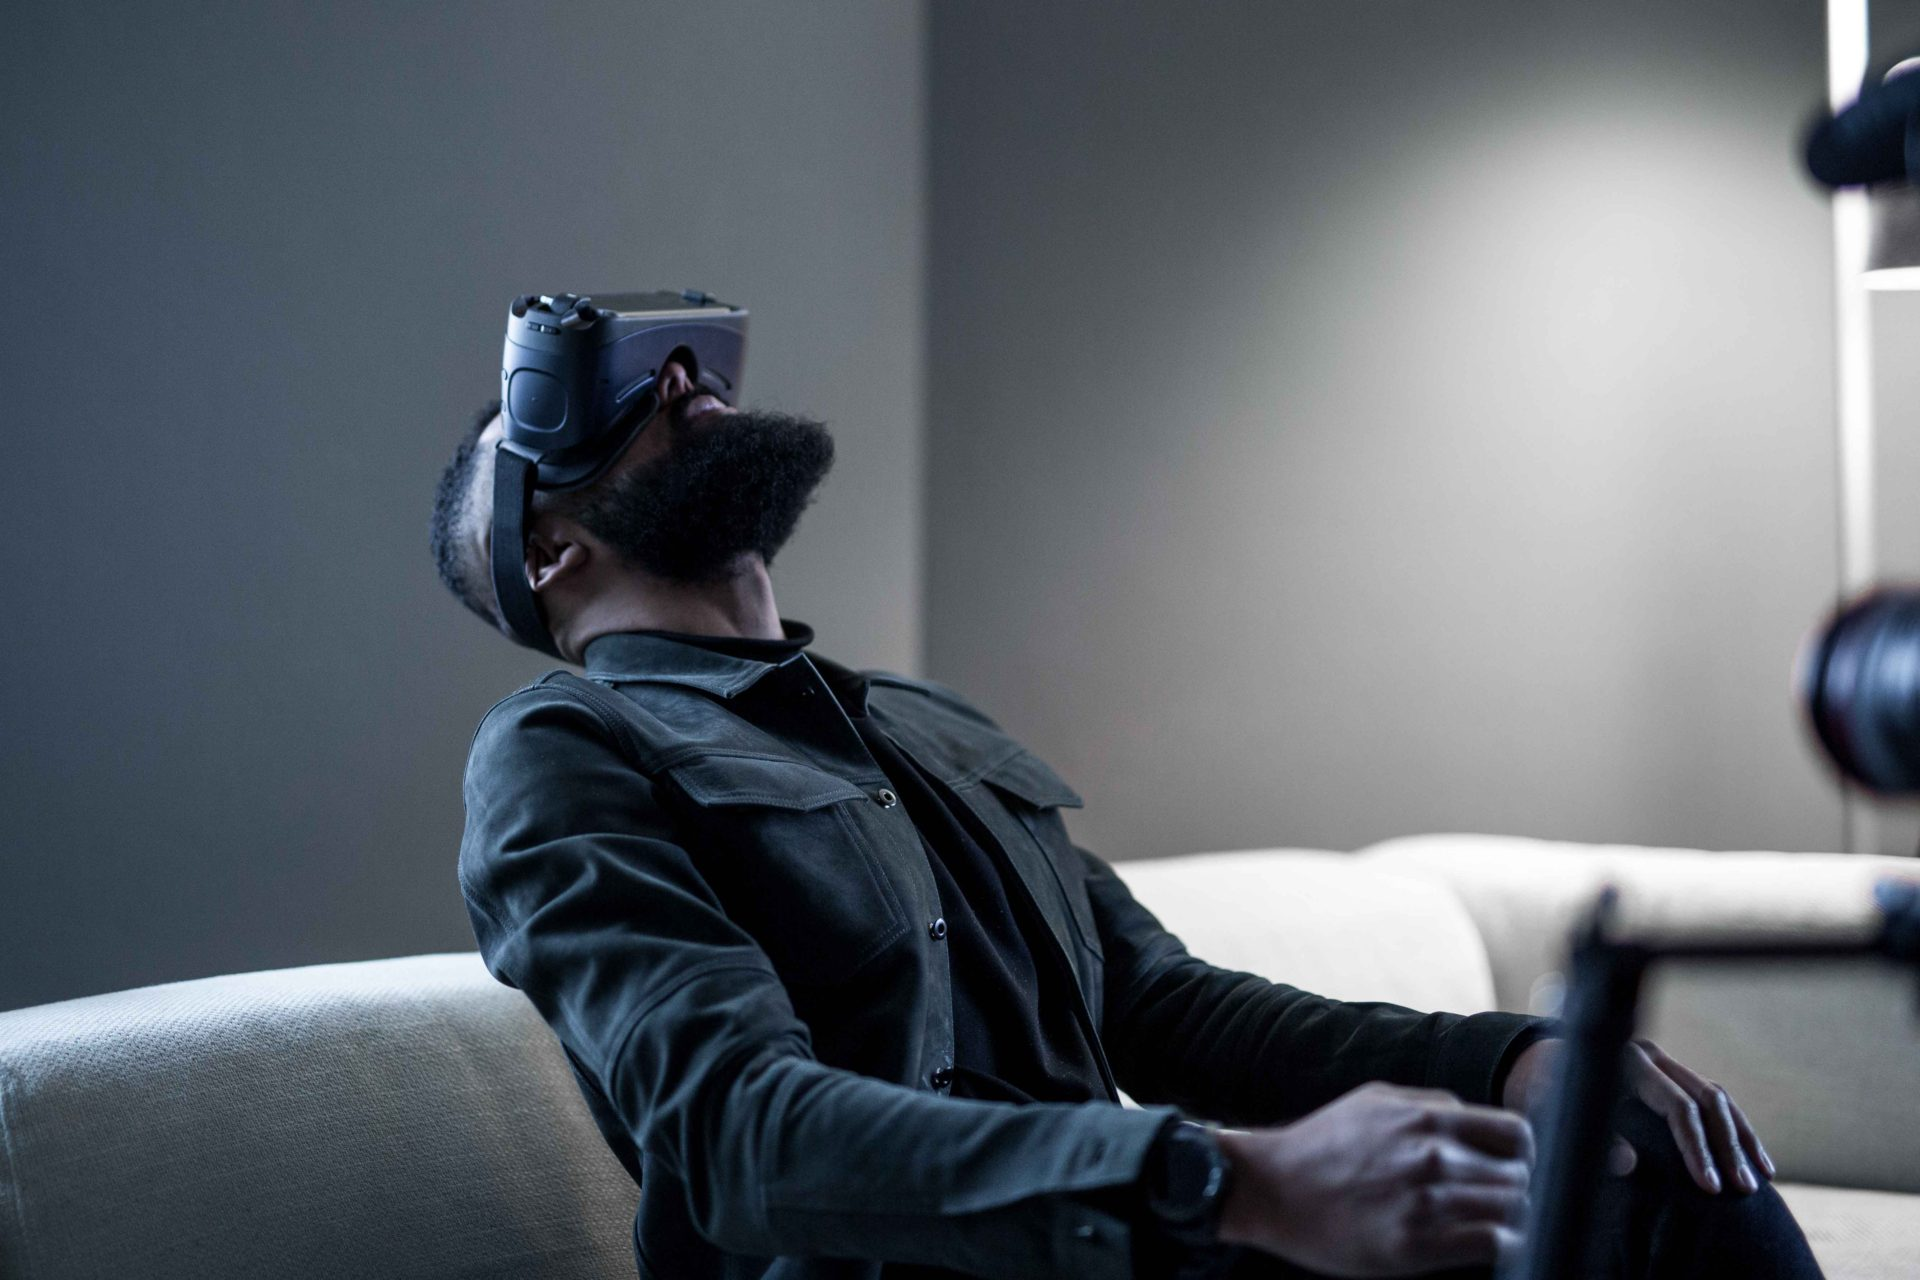 Samsung Virtual Reality Gear Review